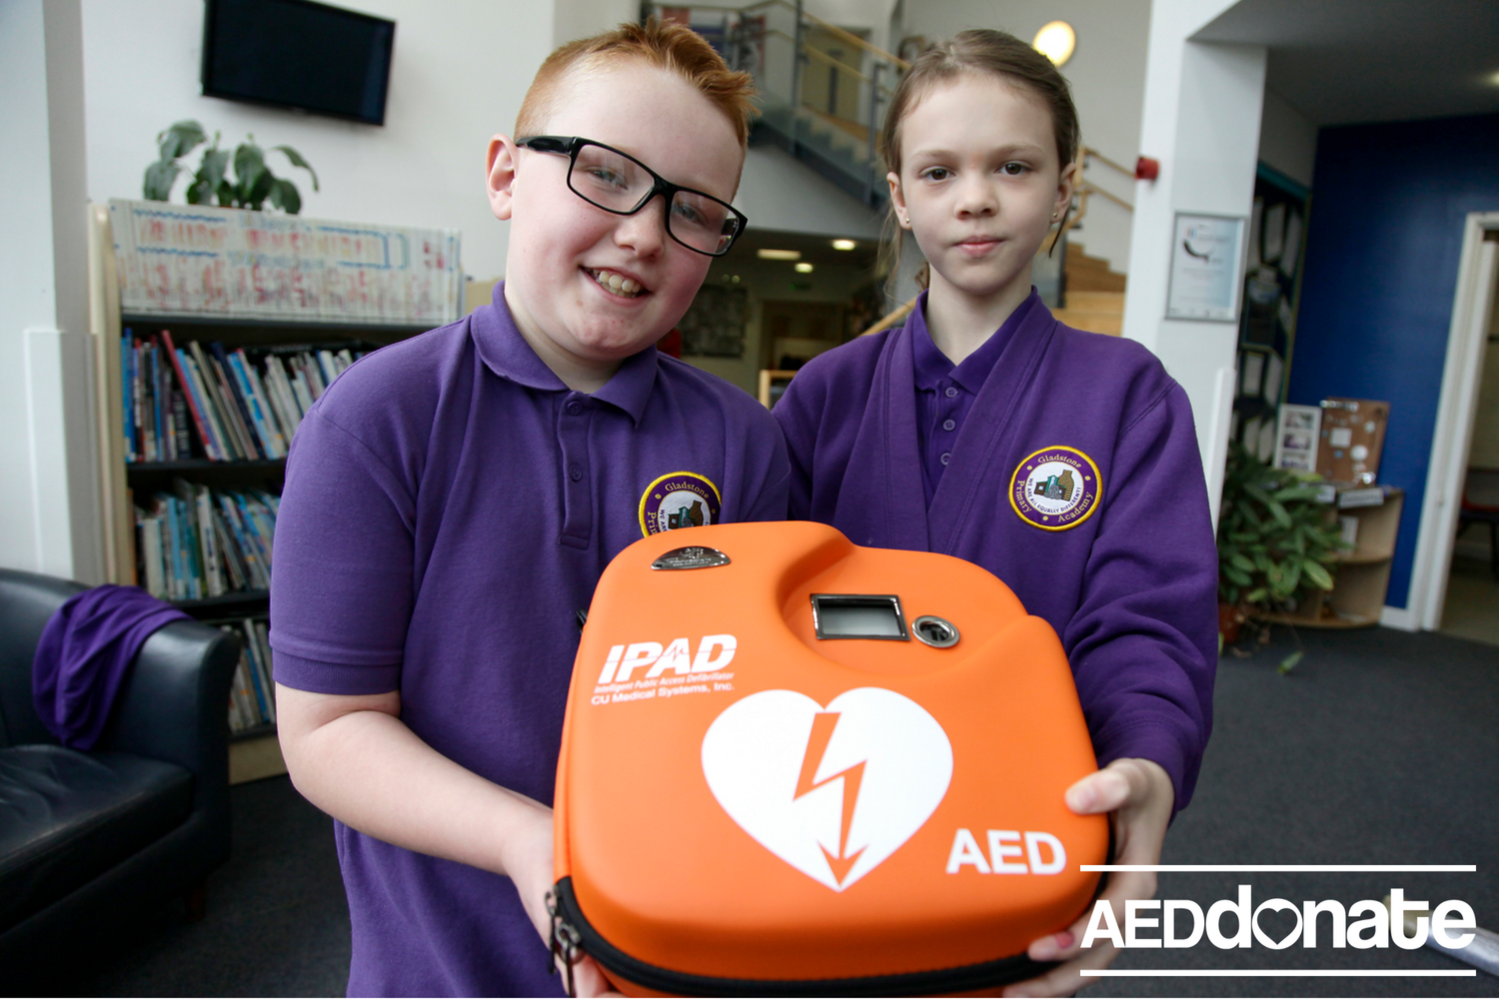 Defibrillator installed at Gladstone Primary Academy, Stoke-on-Trent